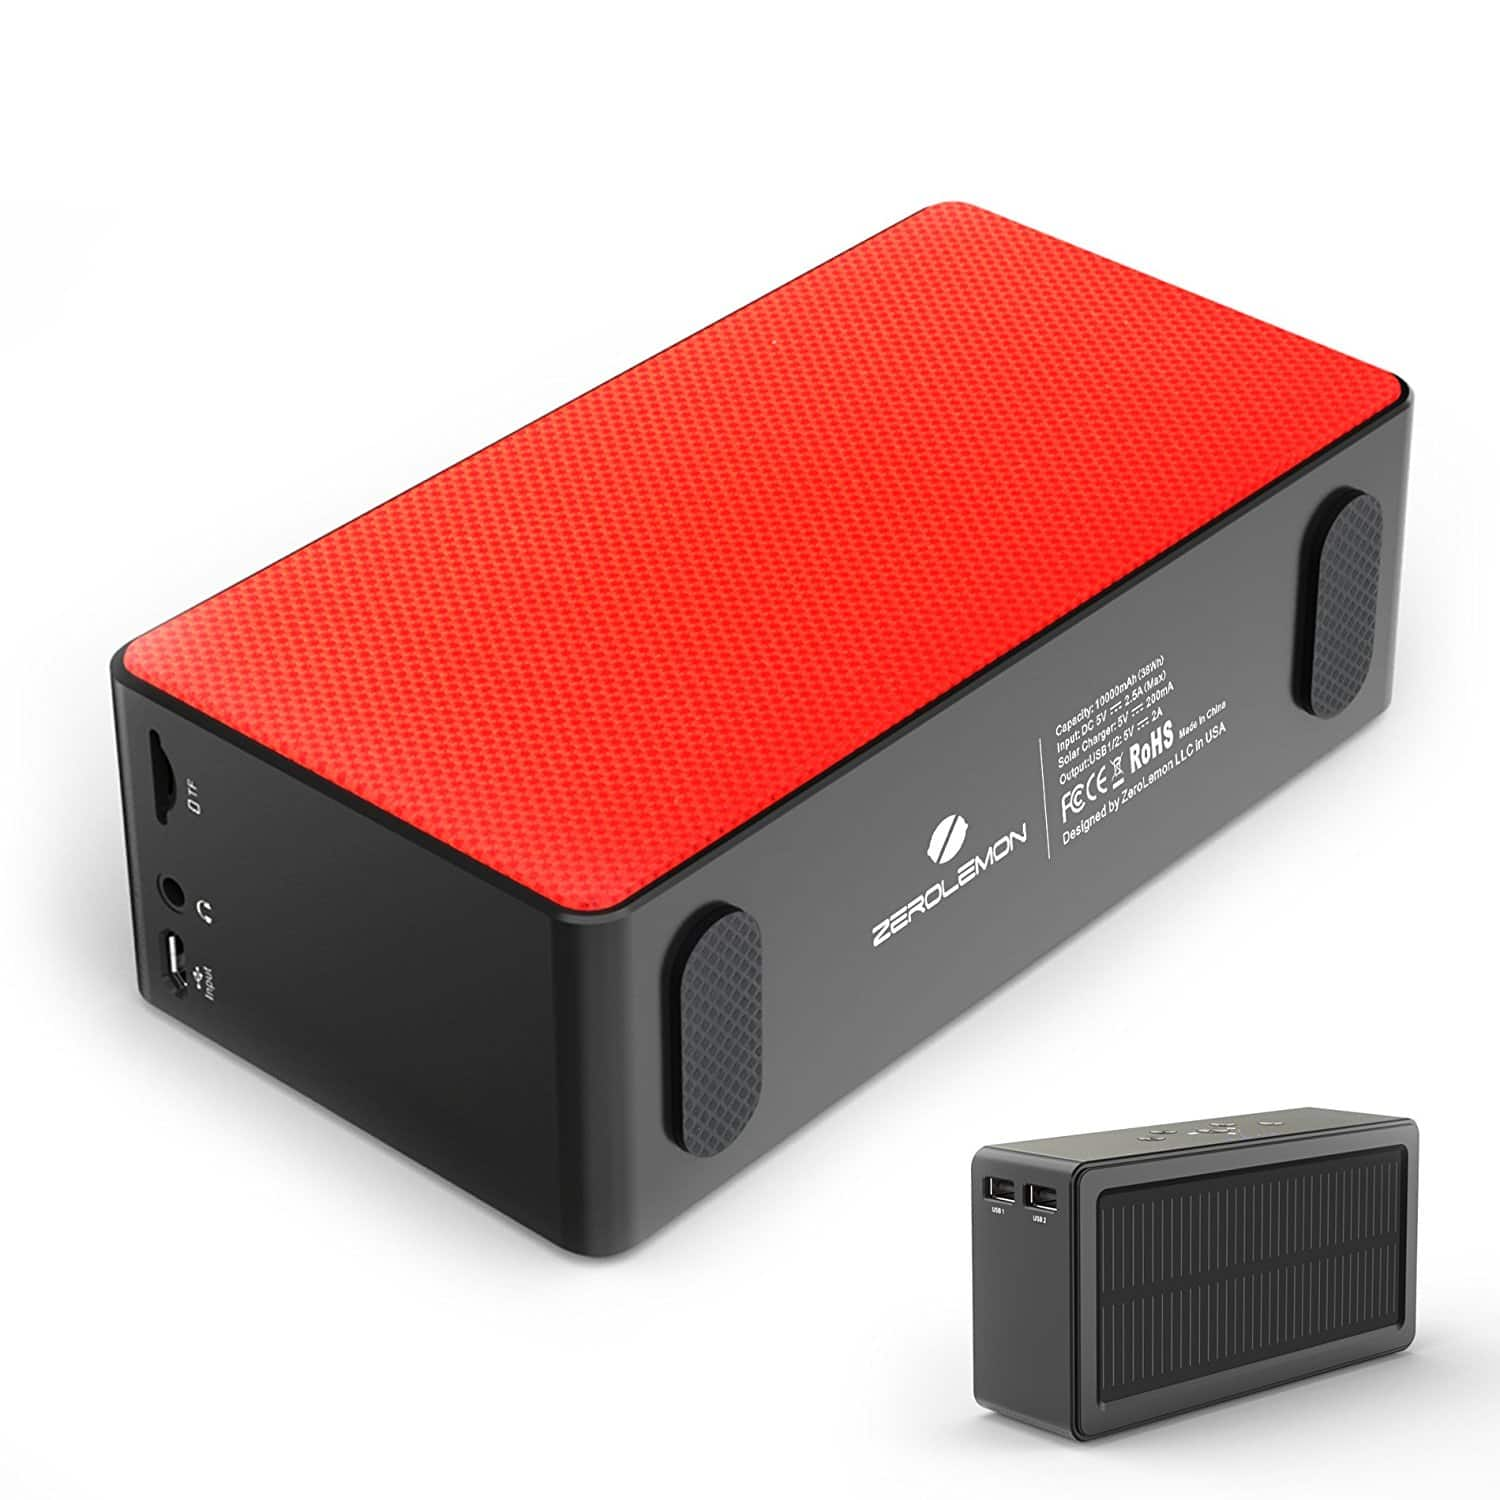 SolarSound 10W Bluetooth Speaker & 10000mah Power Bank $29.99 + f/s With Prime